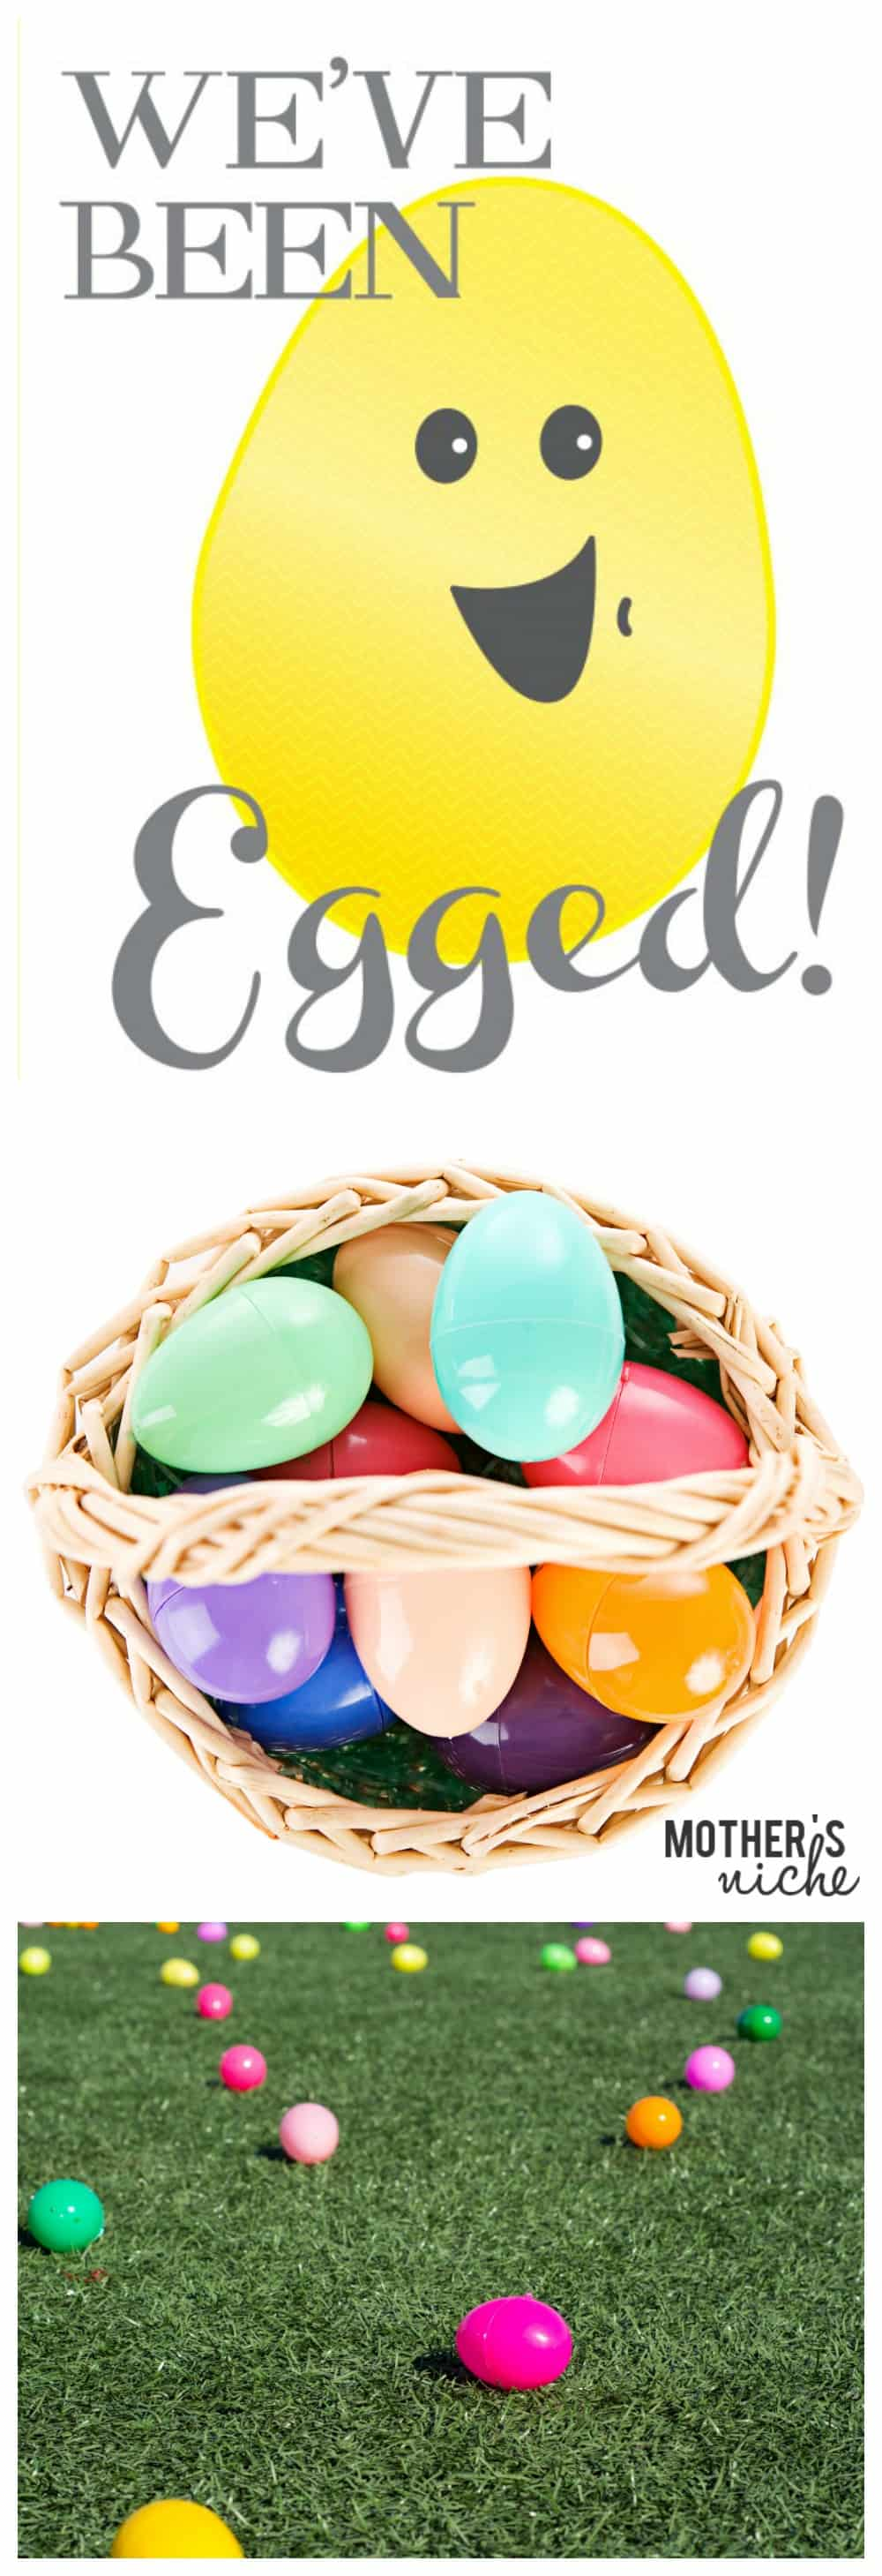 """You've Been Egged!"" Printable. Such a fun way to celebrate the Easter season with your neighbors, or bring cheer to someone that needs it"